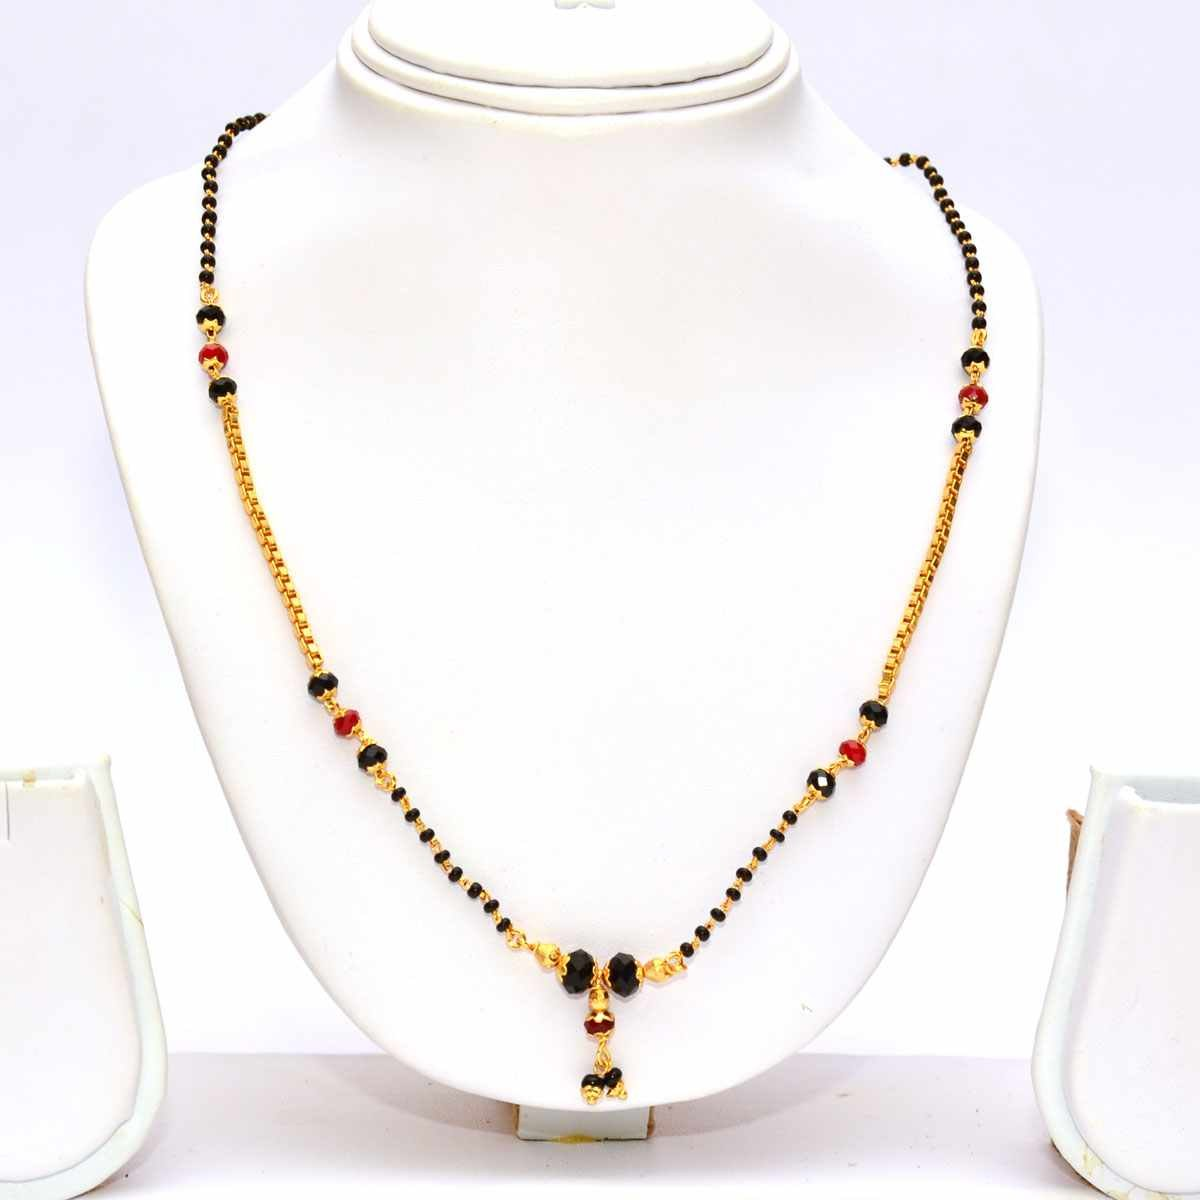 Anvi's Black Beads With Chain Design(18 Inches)  Online. Jewelry Gemstone. Simple Anklets. Metal Strap Watches. Jewelry Companies. Vinyl Bracelet. Kohinoor Diamond. Creative Engagement Rings. Pointer Rings